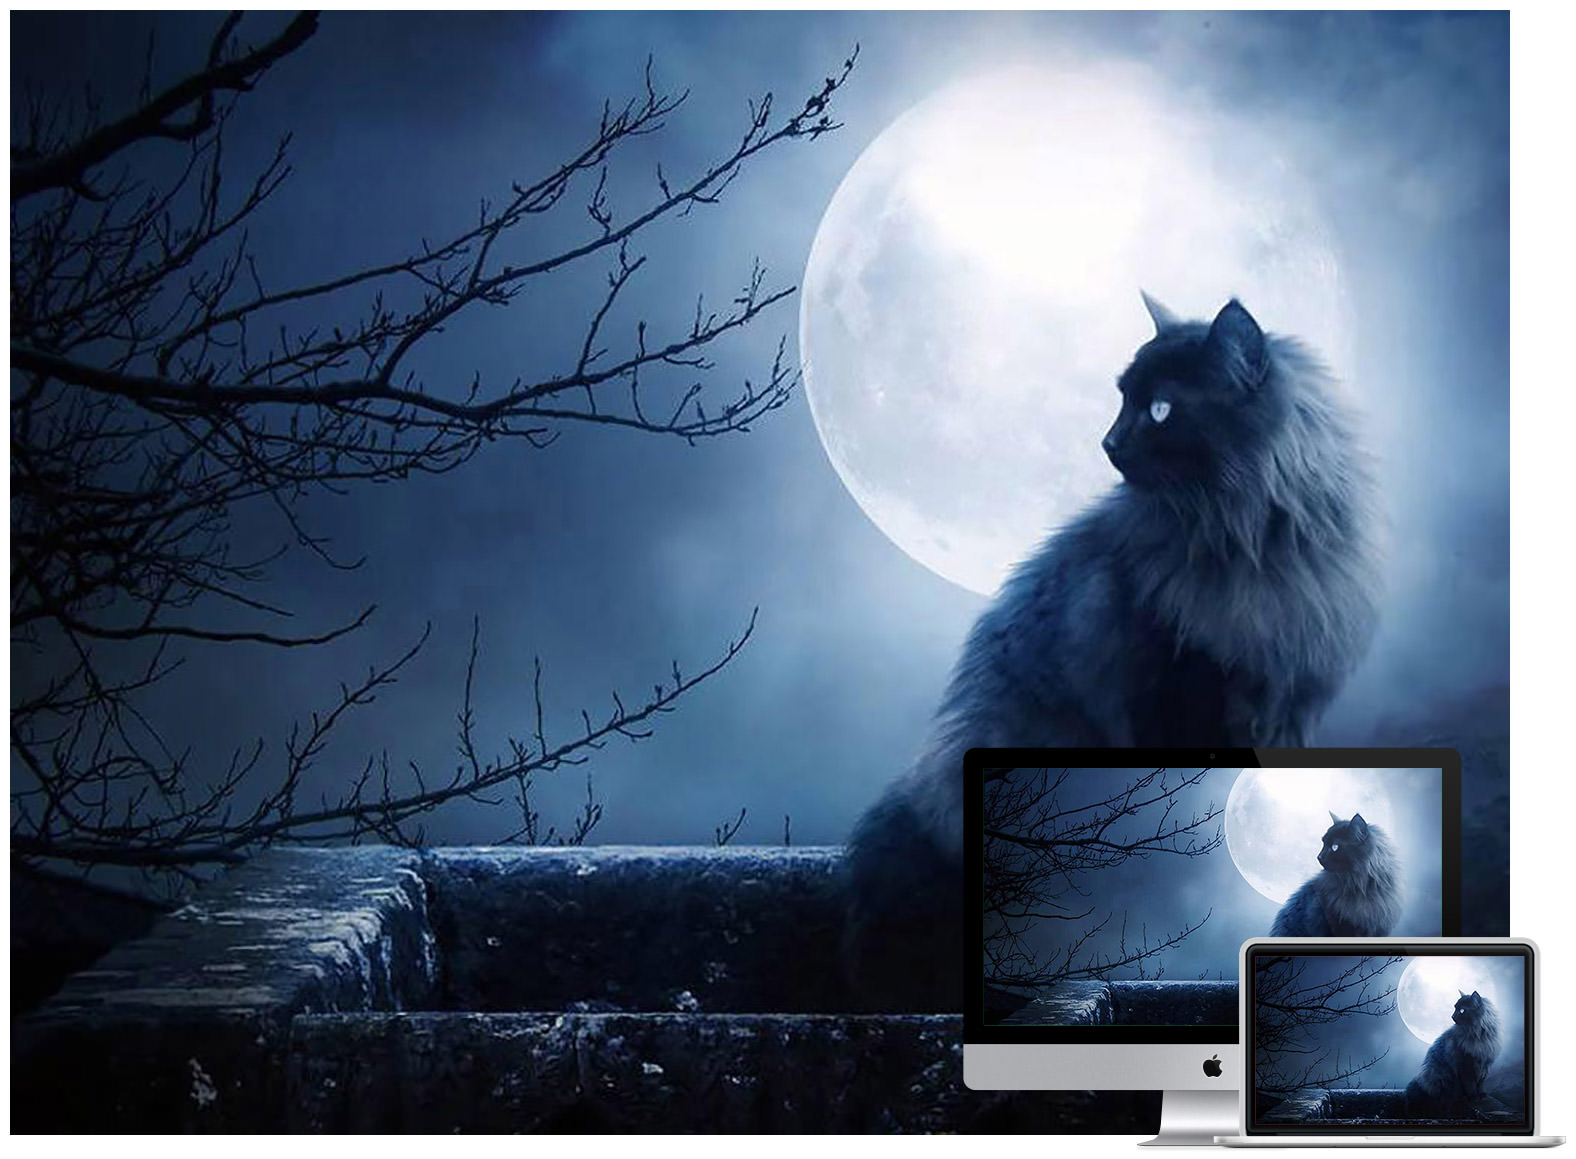 full-moon-kitty-wallpaper